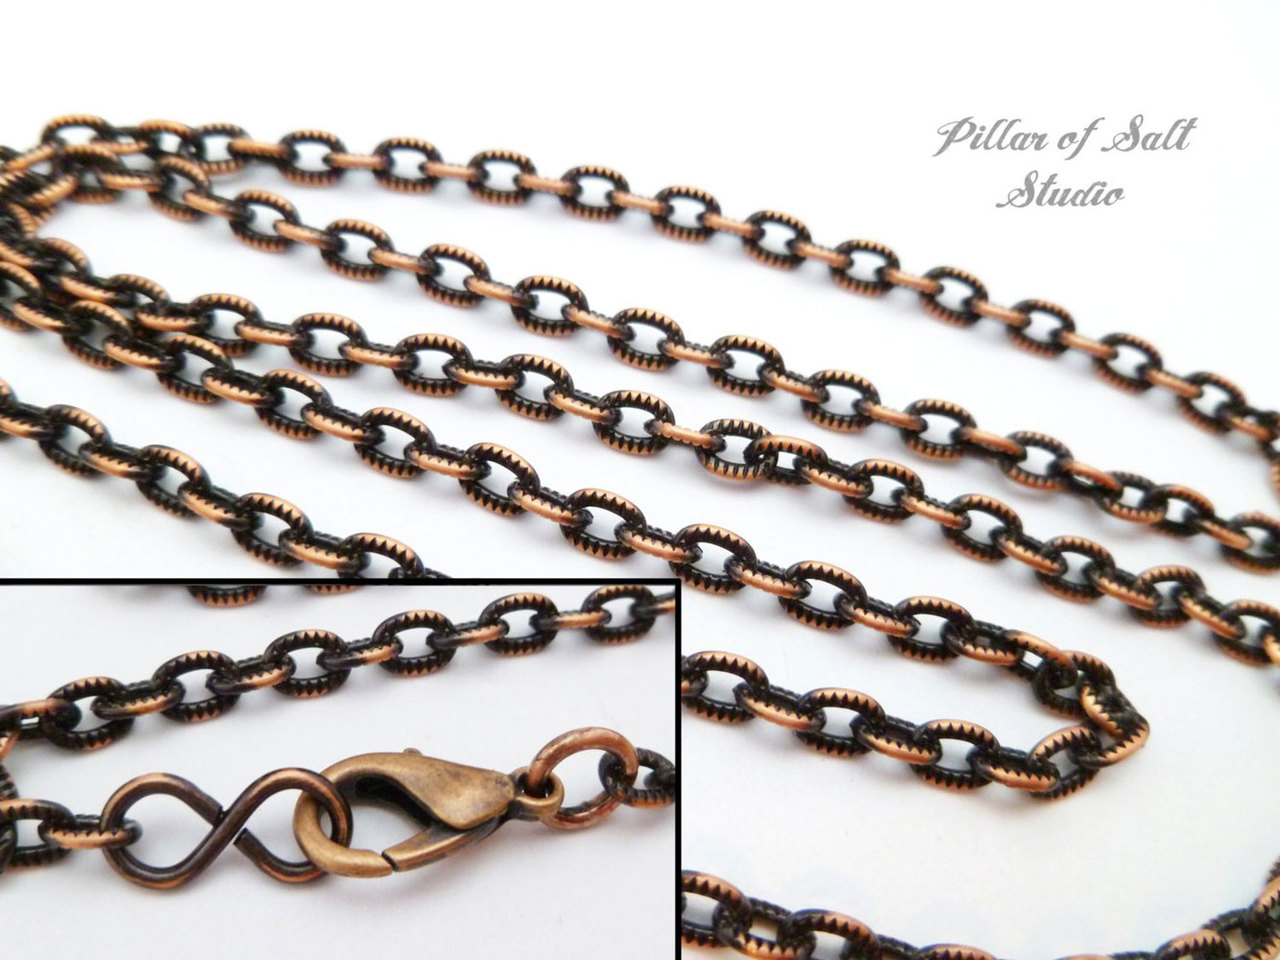 Solid Copper Chain necklace - Great option for Pendants